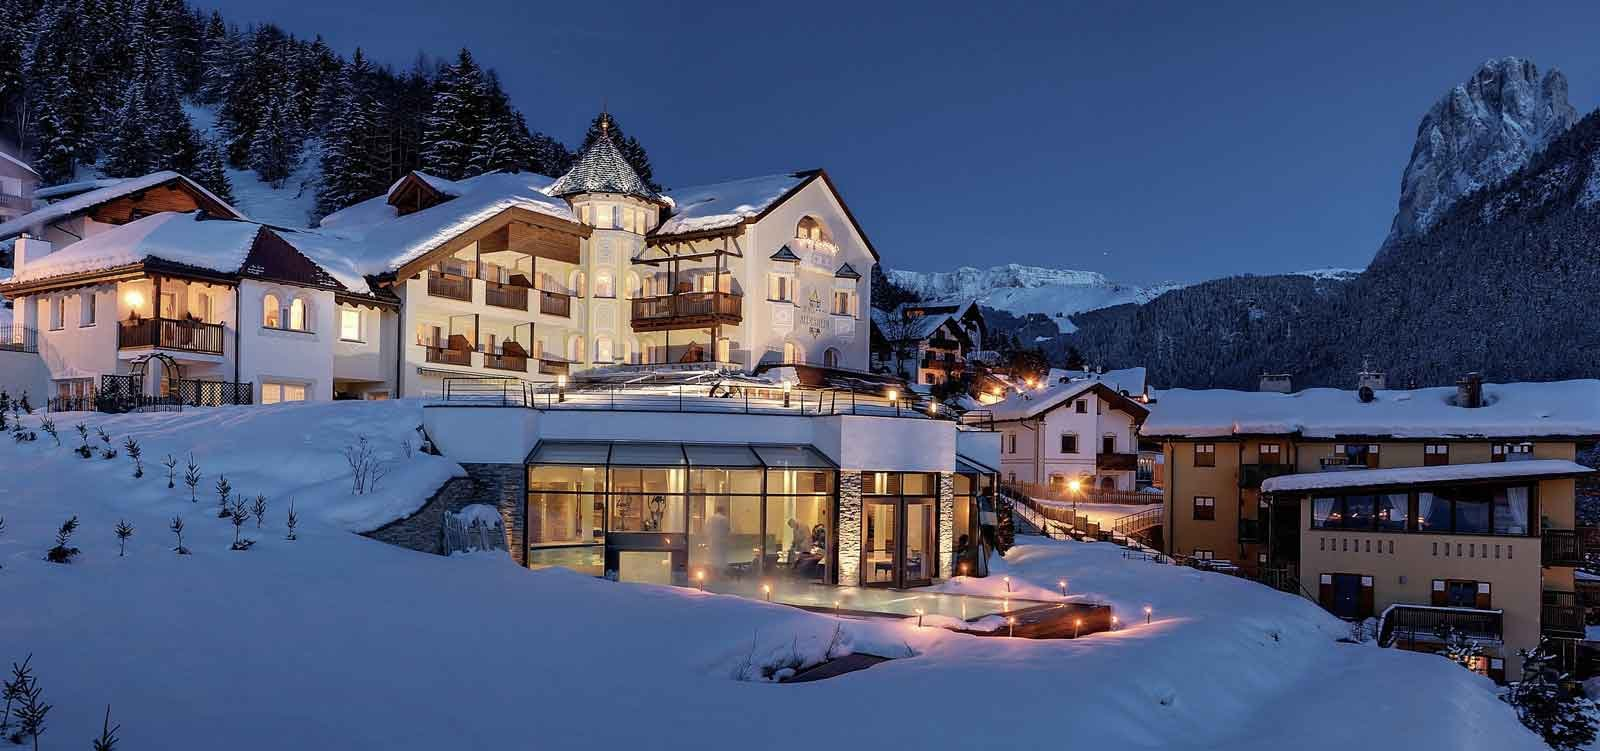 Alpenheim charming hotel spa wellness hotel with for Quaint hotel